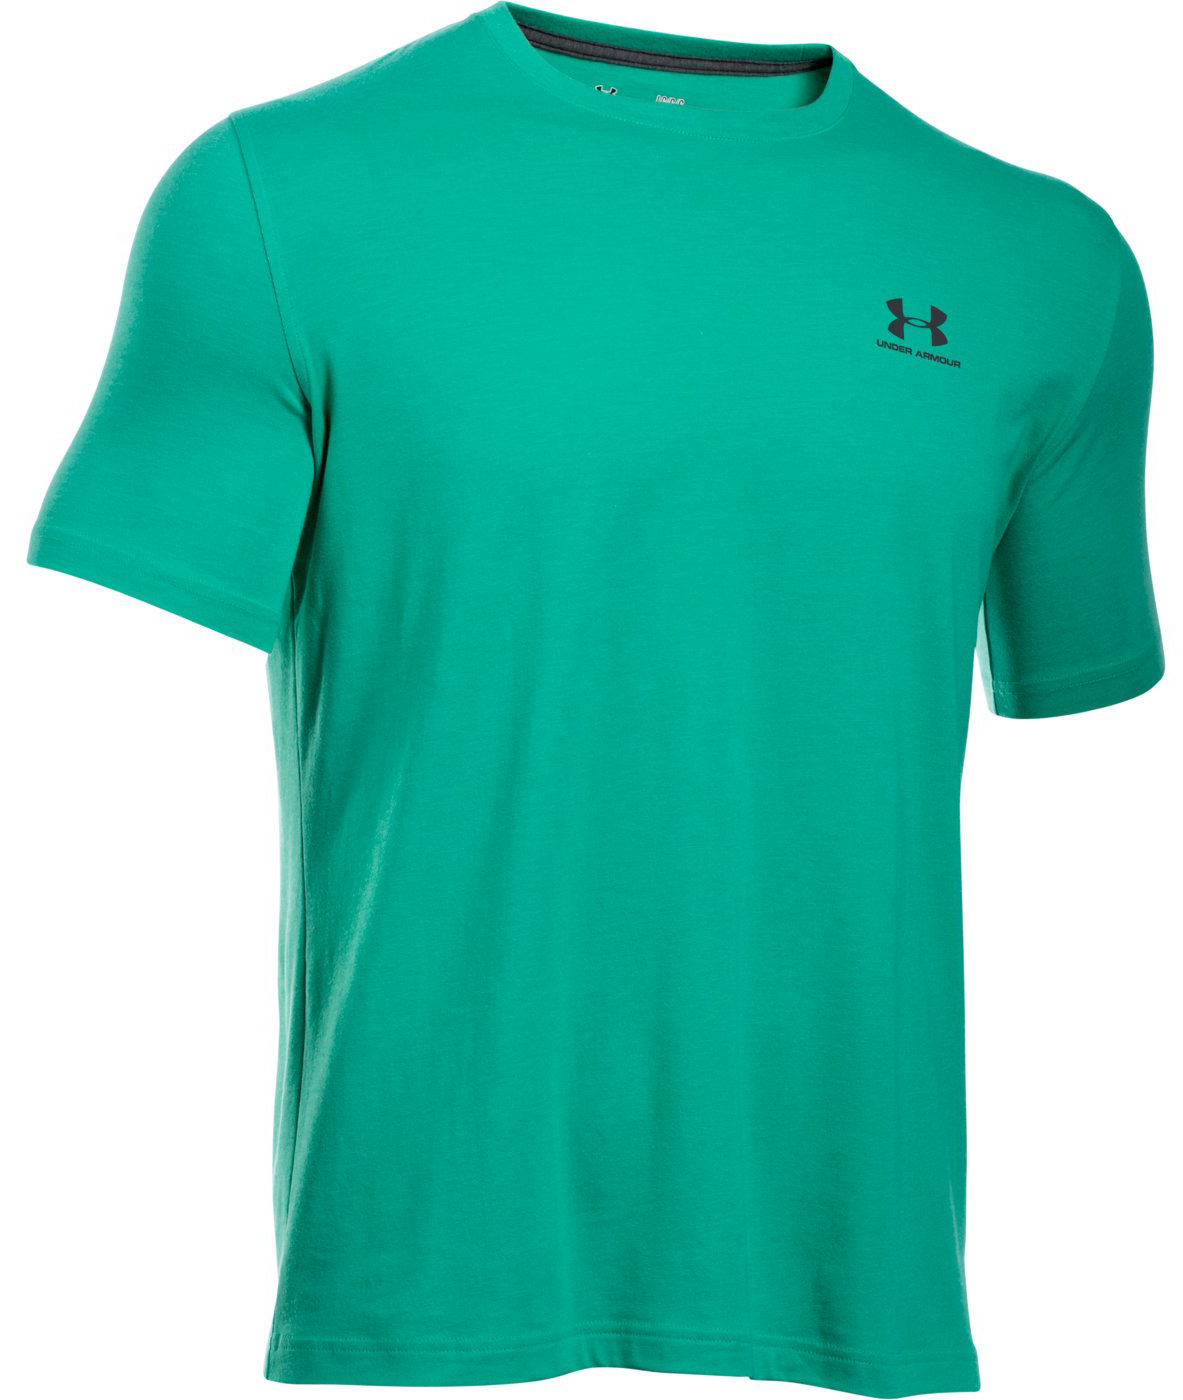 Under armour men 39 s charged cotton t shirt for Under armour charged shirt